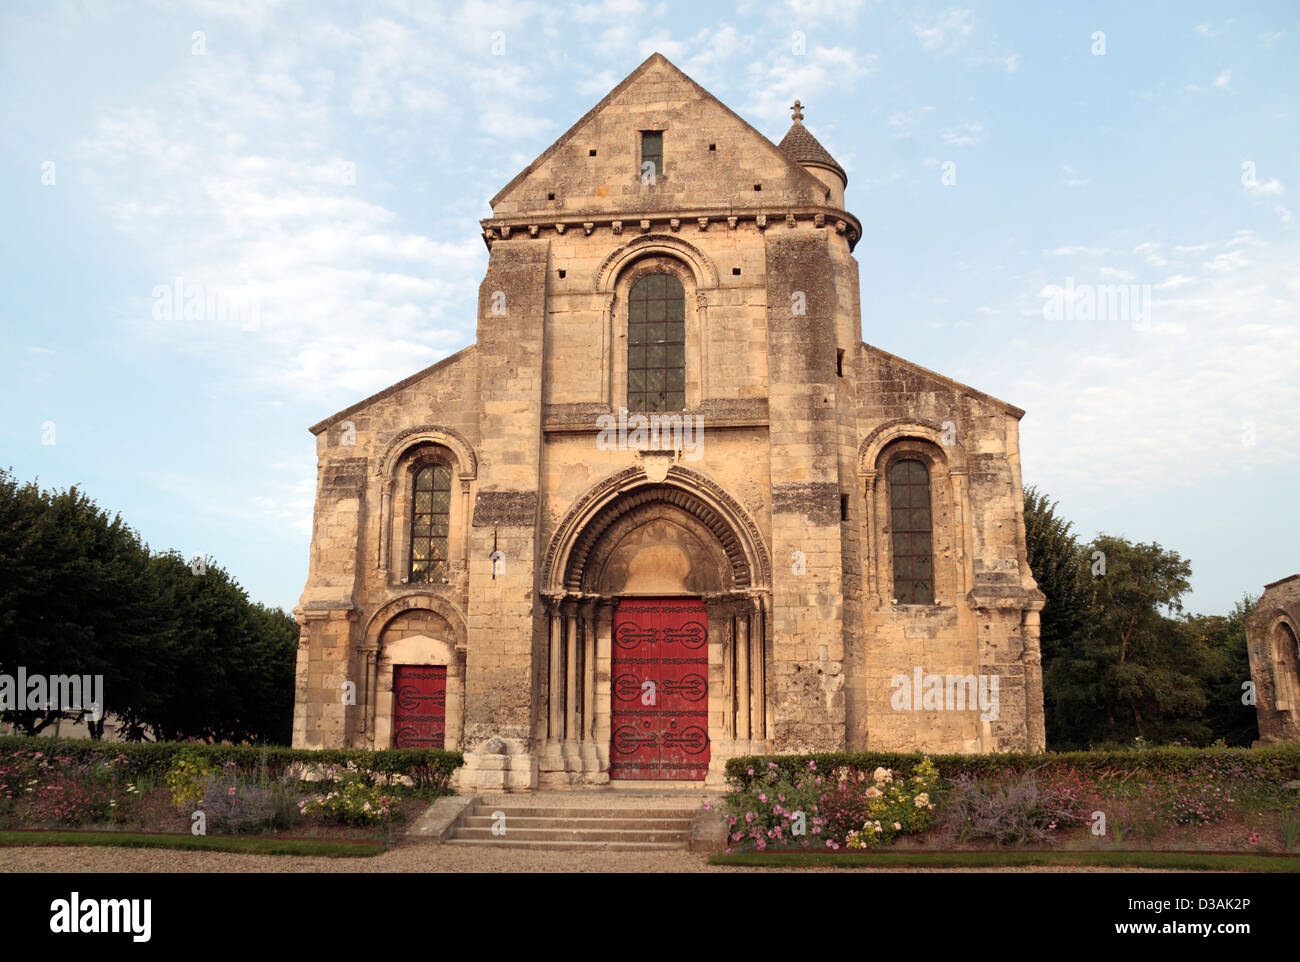 The Eglise St Pierre & St Protais (The church of Saint-Pierre or St Peter) in Soissons, Aisne, France. - Stock Image